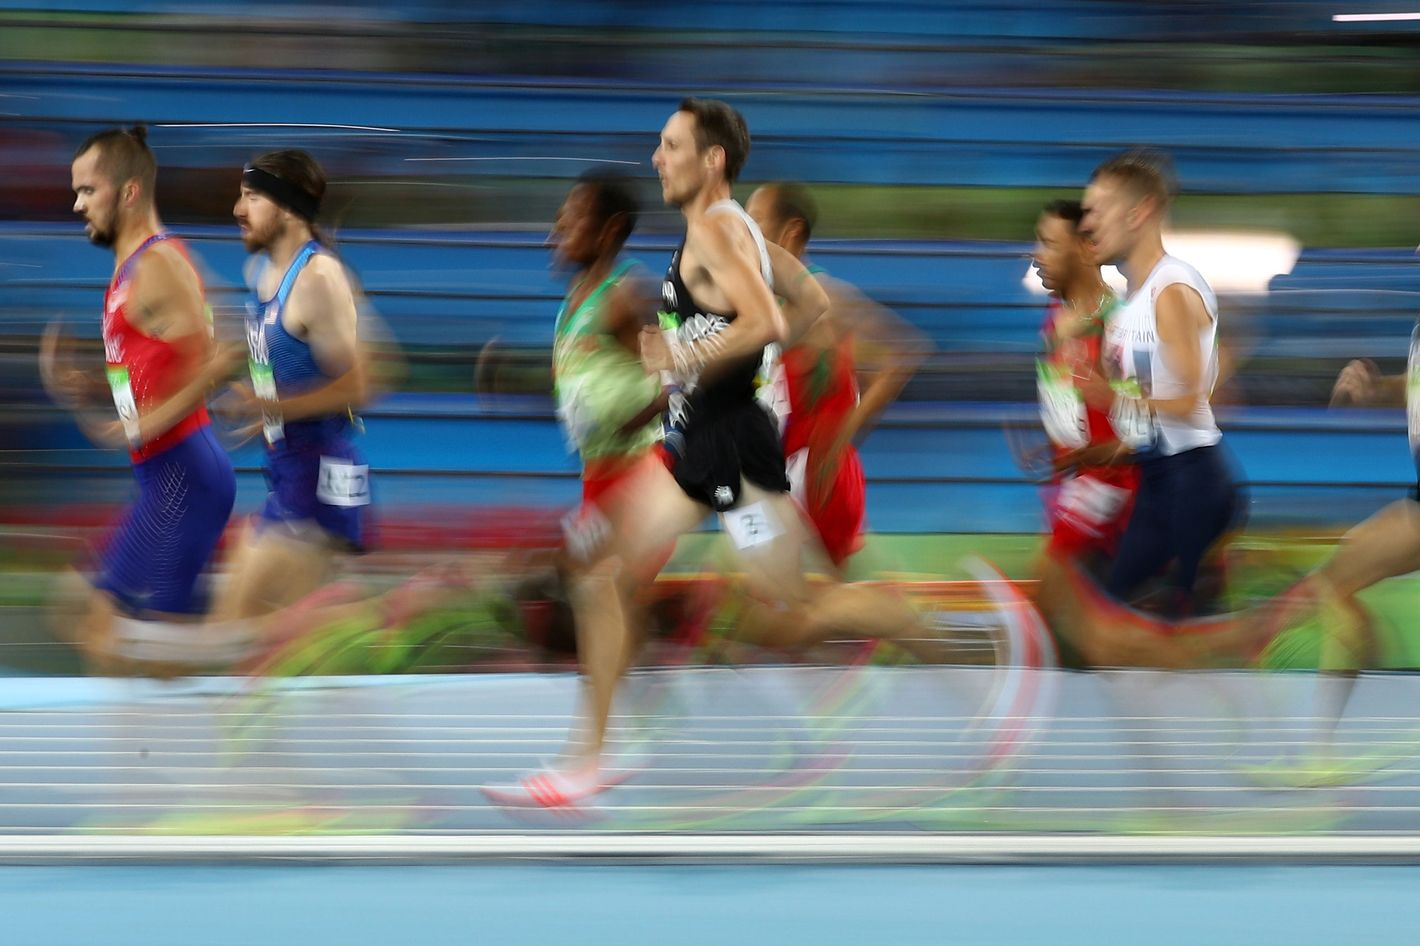 aa645f210ff0 Olympic Medalist Nick Willis on How to Run a Faster Mile